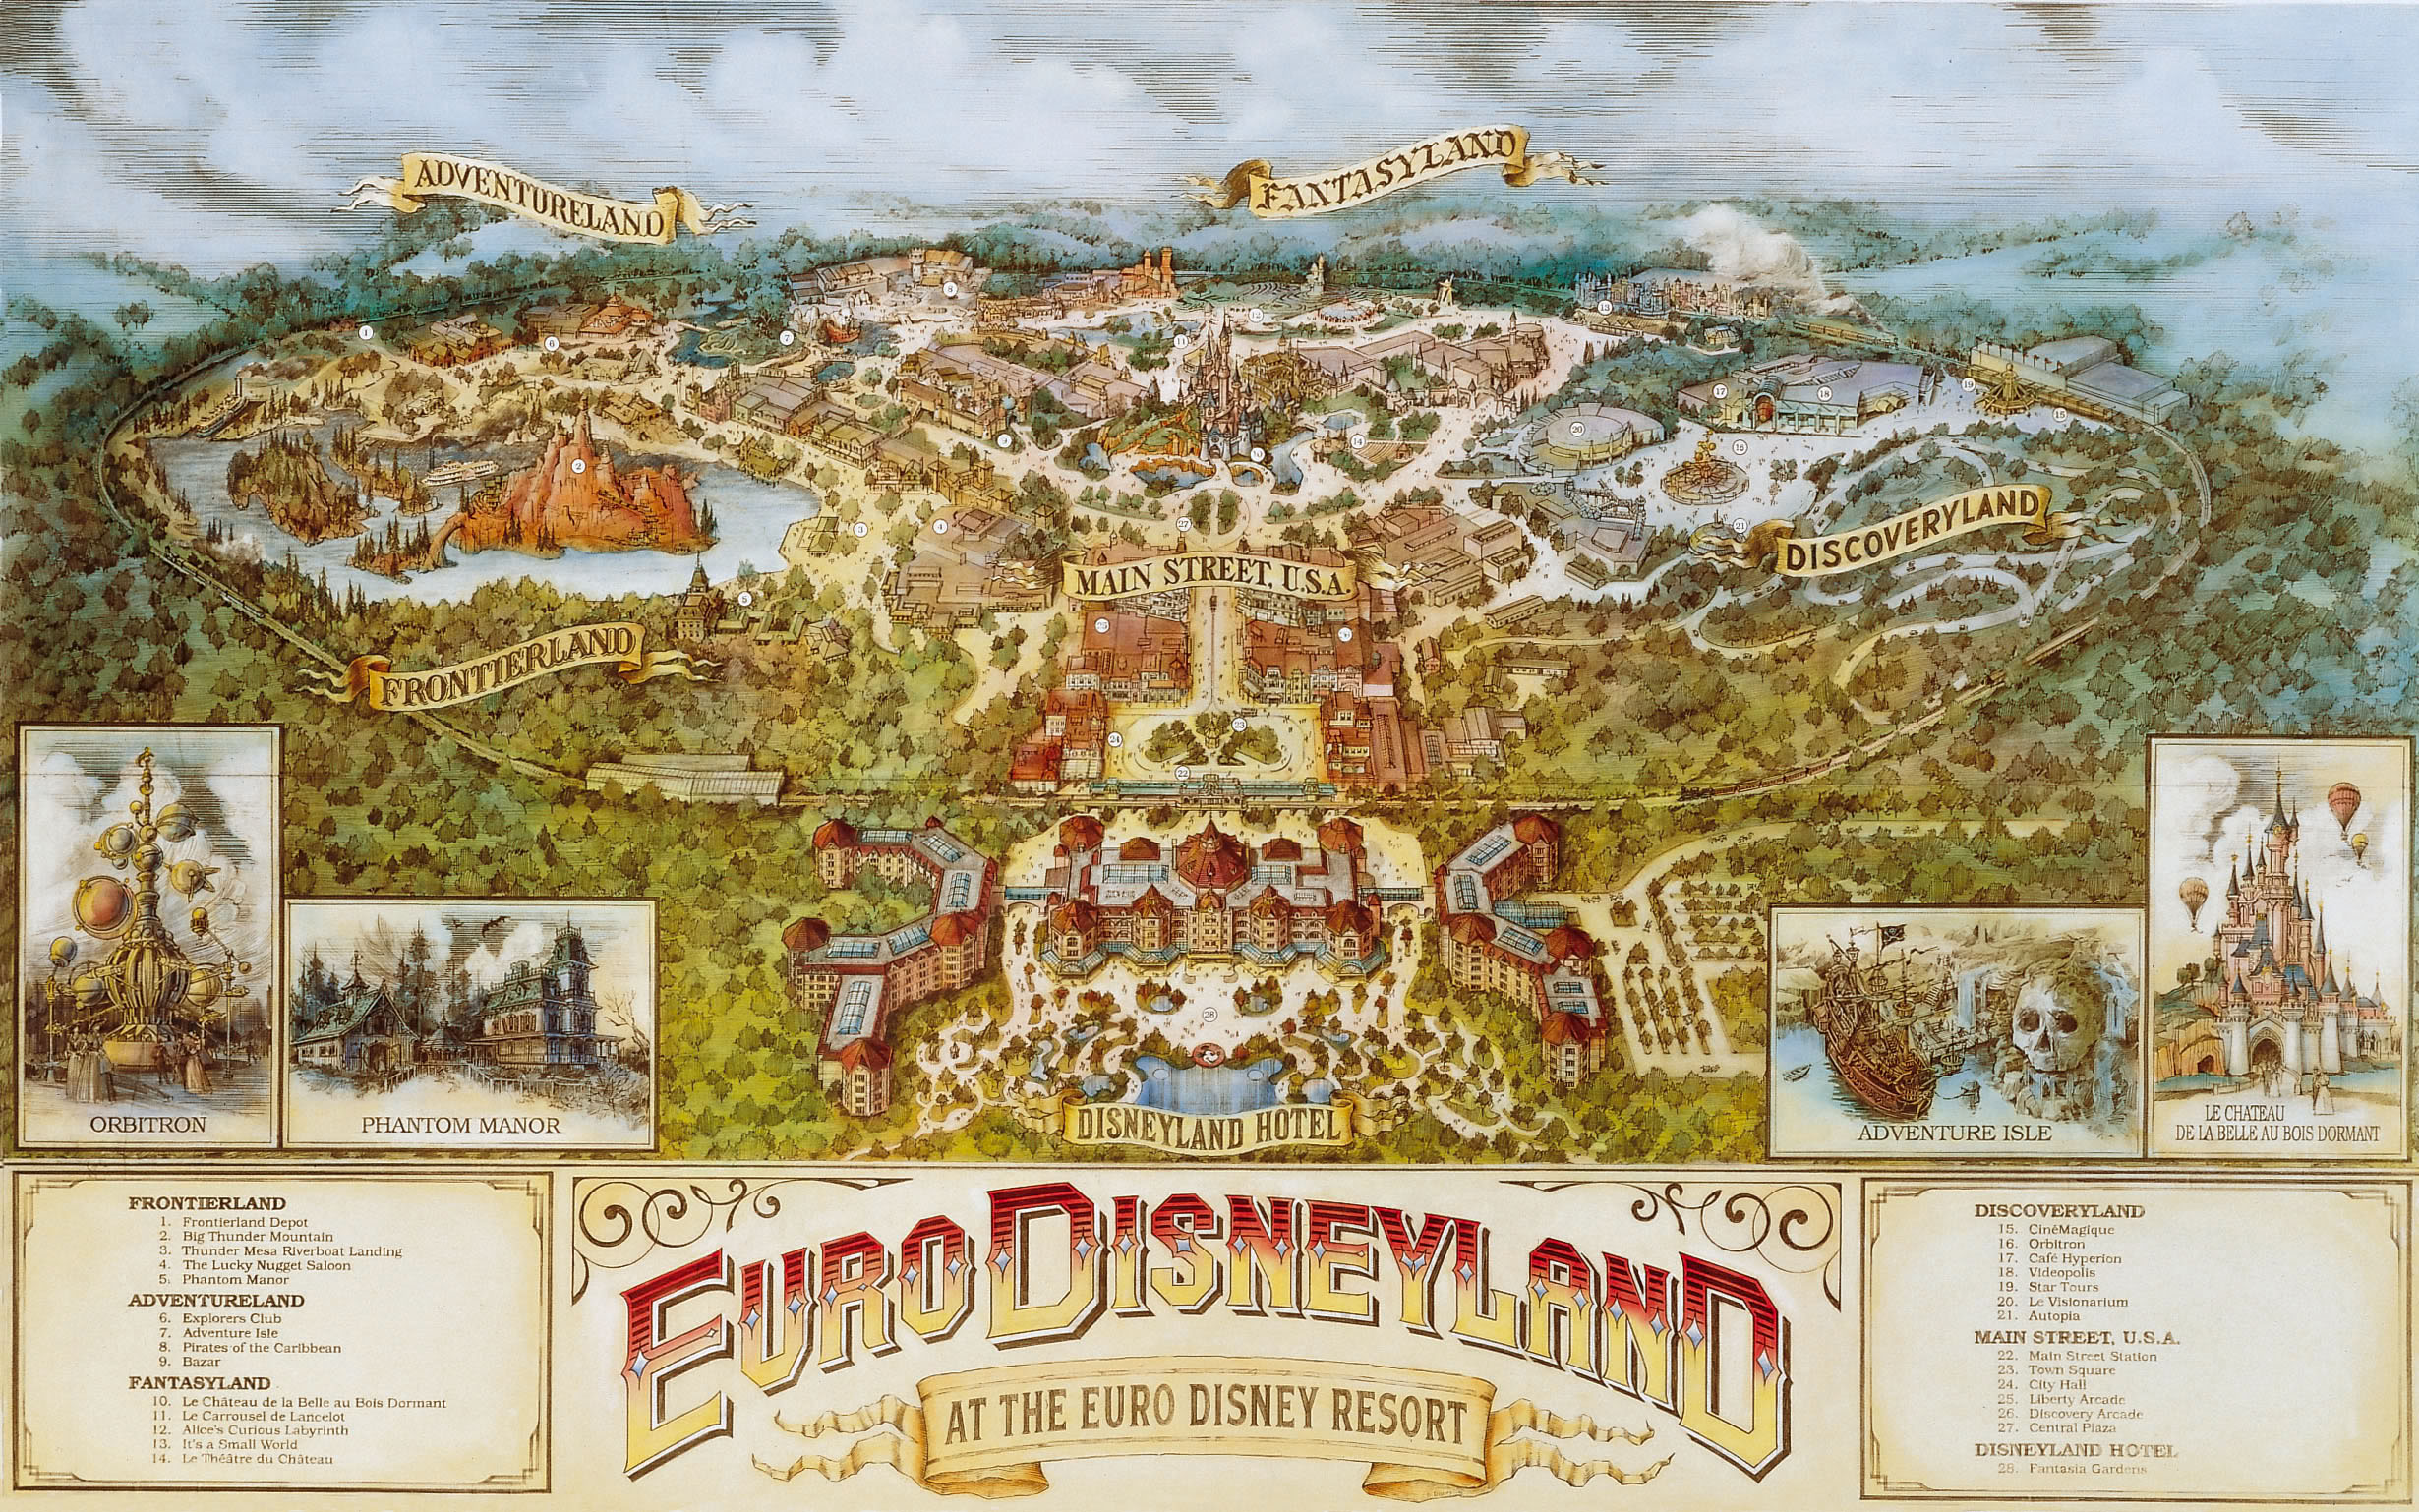 Euro Disneyland was opened in Paris in 1992.